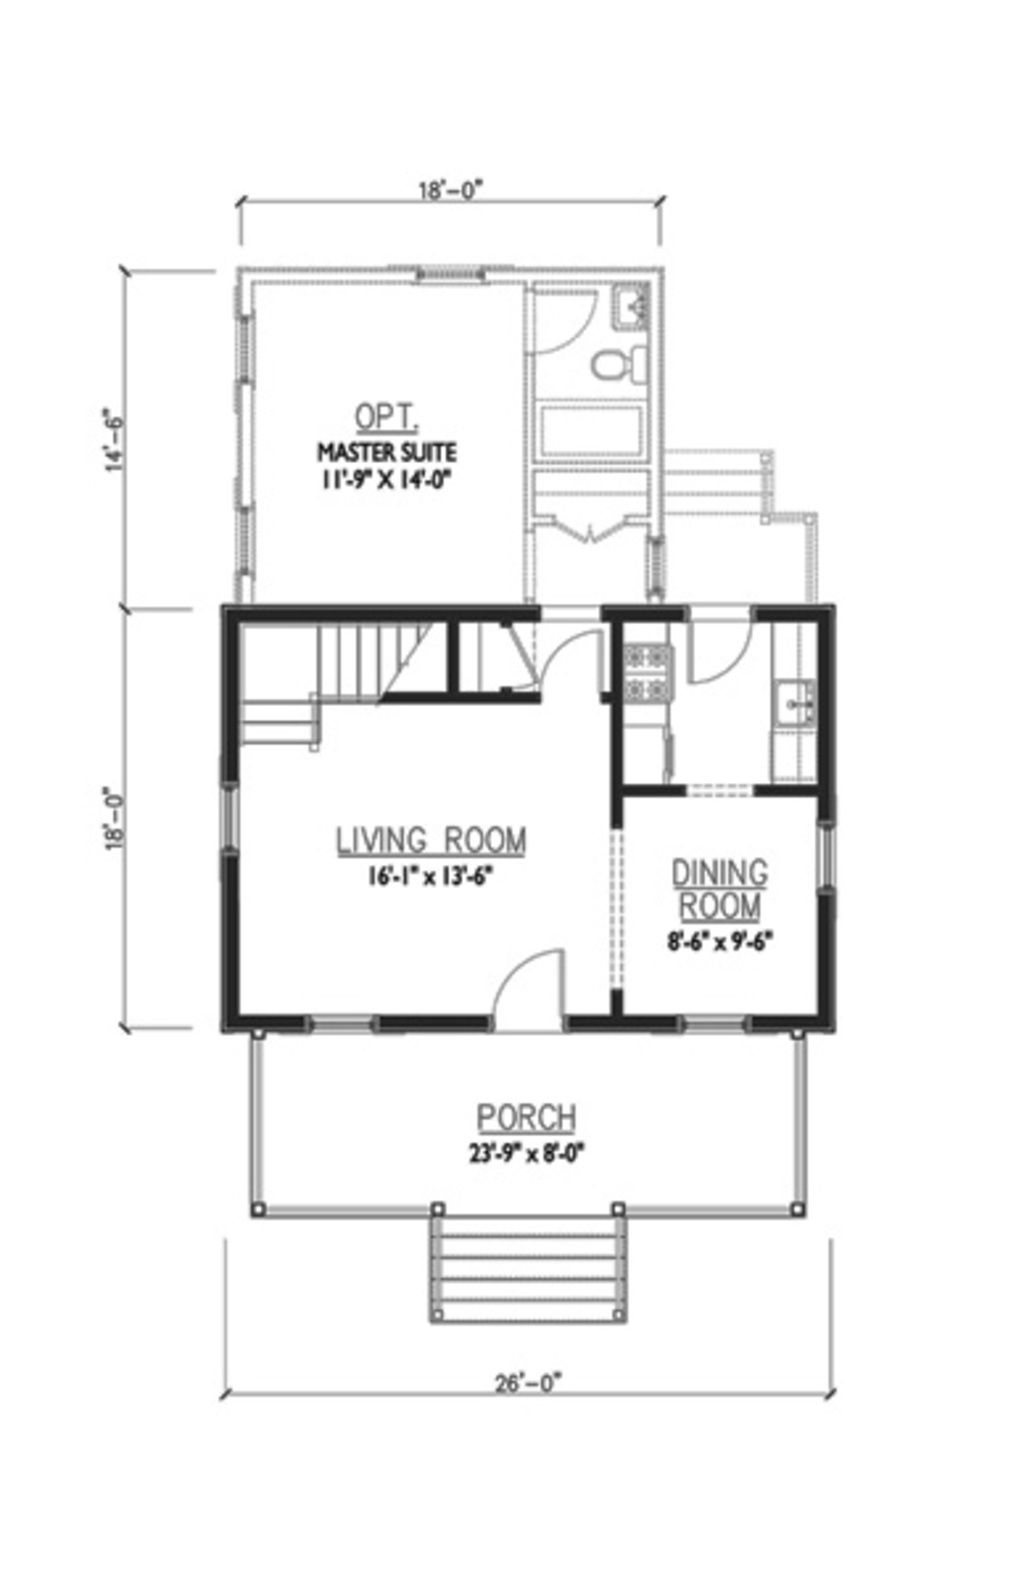 Cottage Style House Plans 2 elberton wayplan 1561 top 12 best selling house plans english cottagesenglish cottage styleenglish Designed By Marianne Cusato 936 Sq 2 Bedroom 1 Bath Plan With Addition Of Master Bedroom On Back Cottage Style House